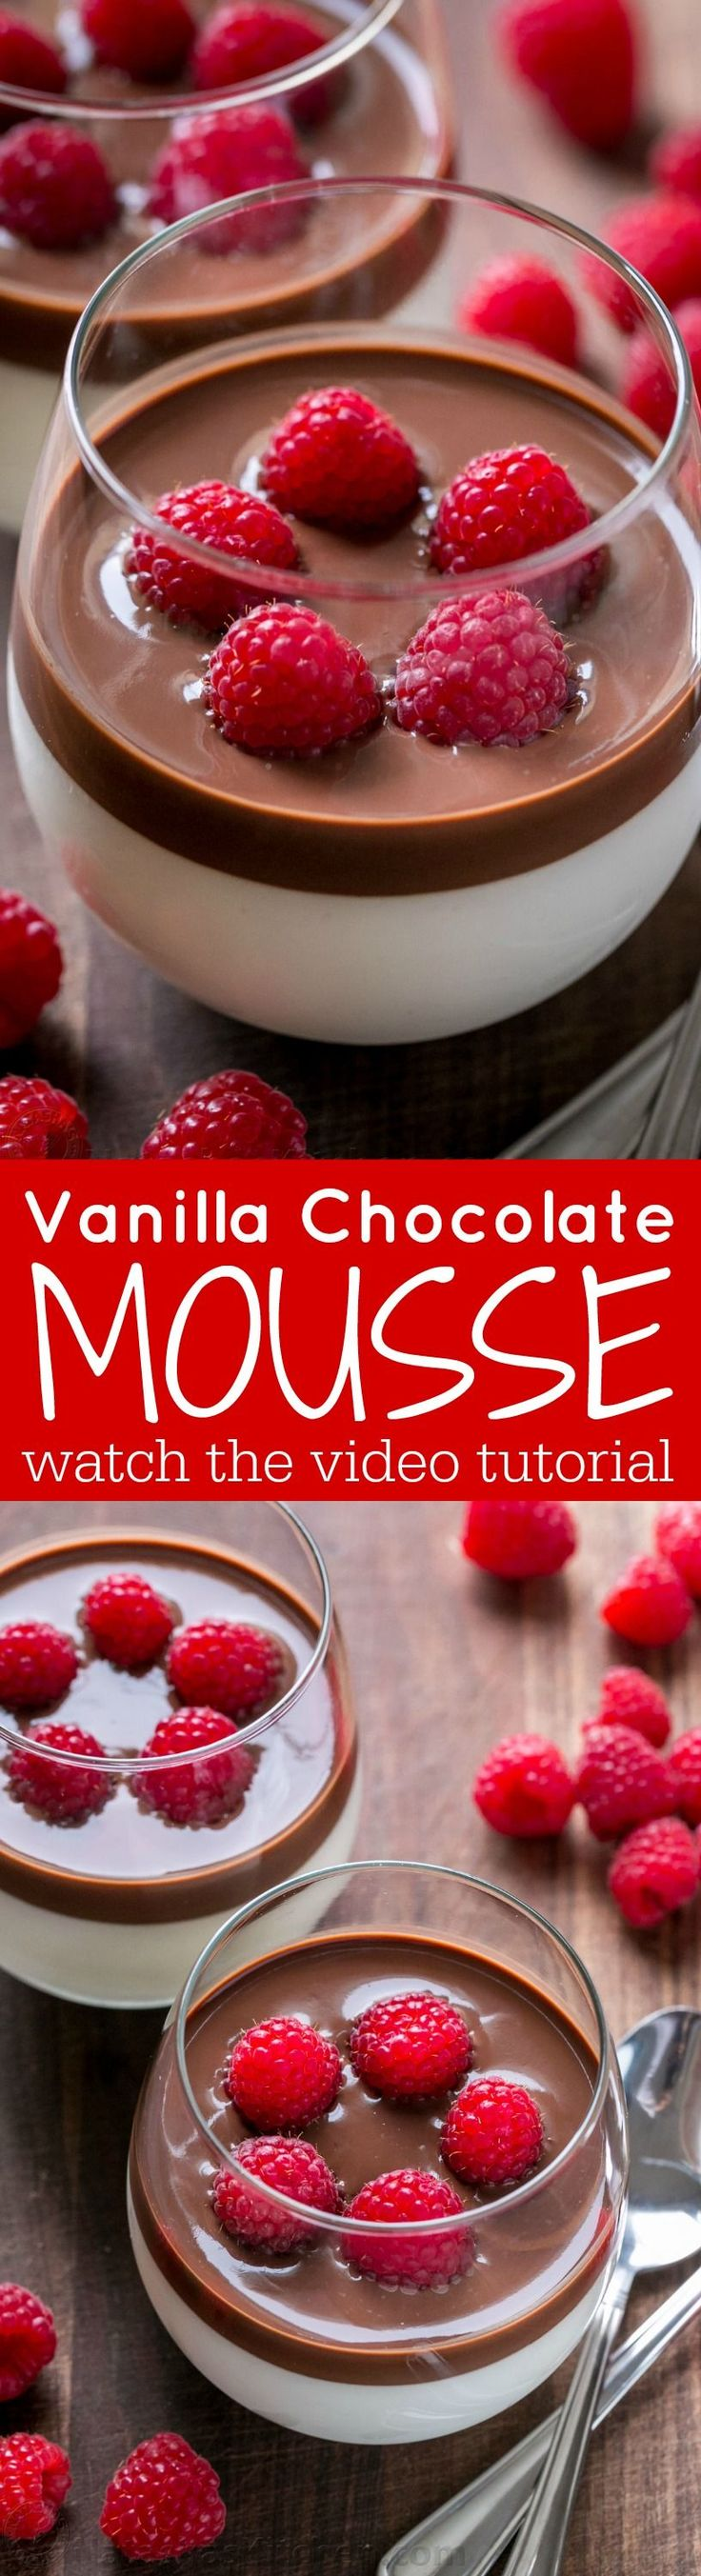 This Vanilla Mousse is an European dessert with creamy base and silky chocolate topping. An elegant vanilla mousse recipe that's surprisingly easy (VIDEO)   natashaskitchen.com